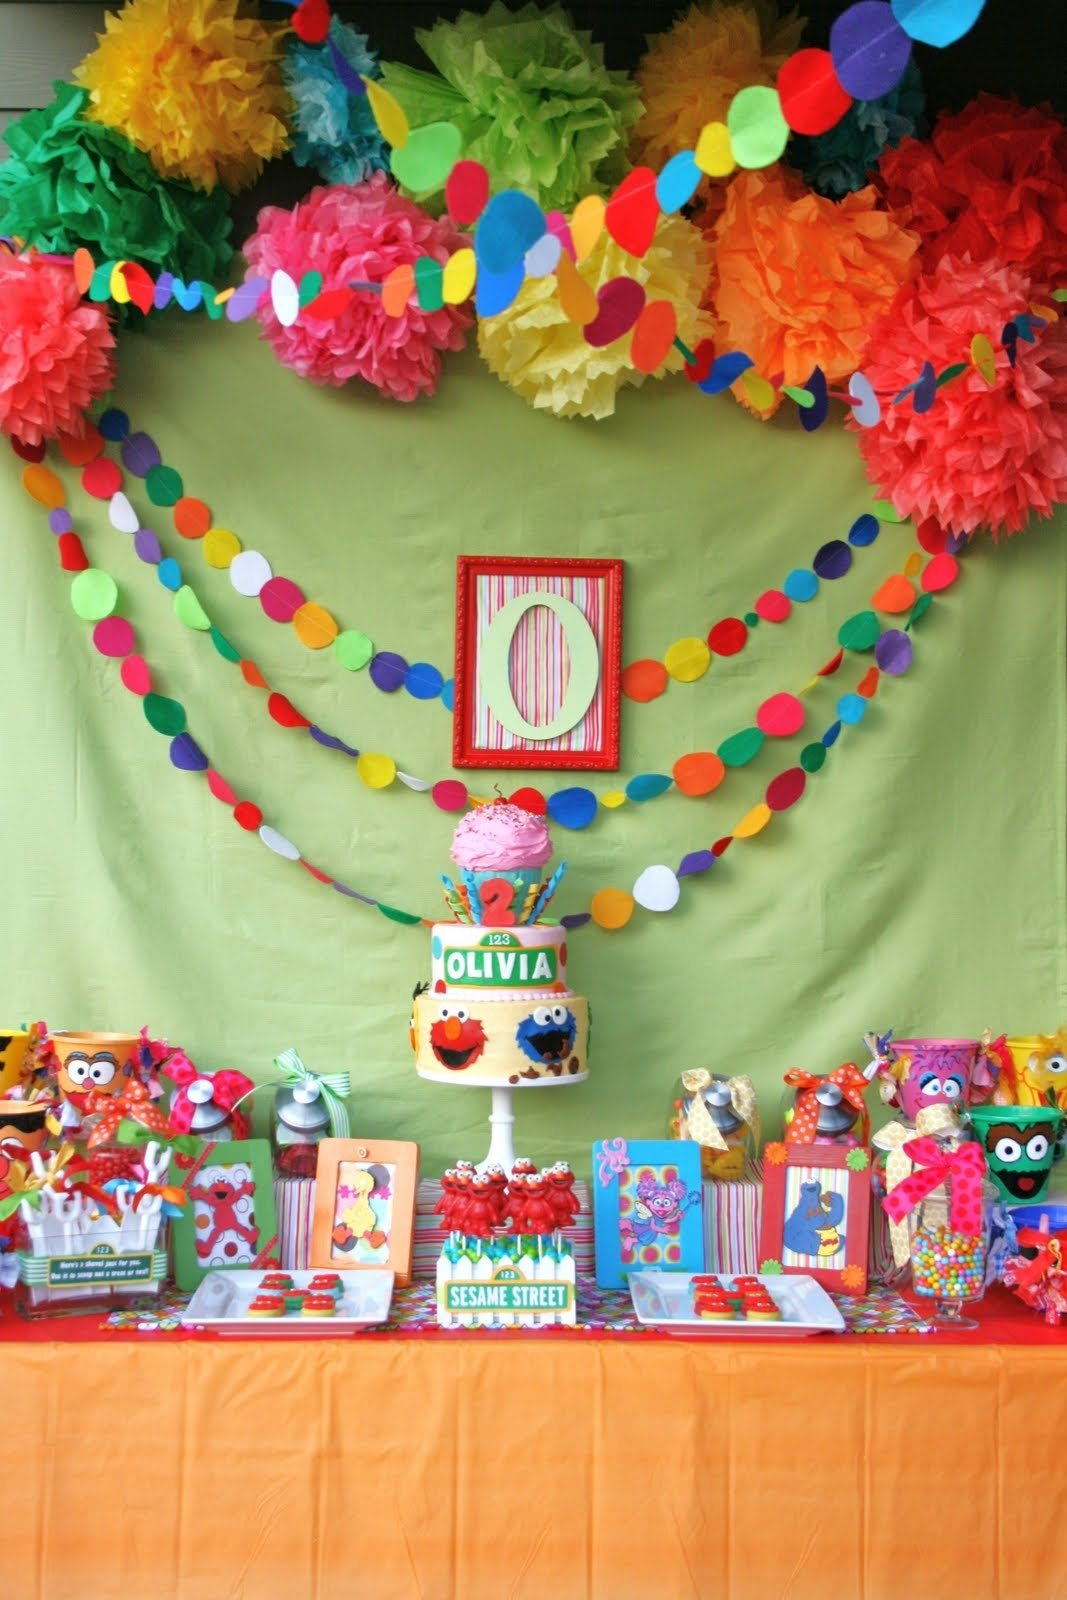 10 Lovely Sesame Street Party Ideas Decorations and everything sweet olivias sesame street party 2020